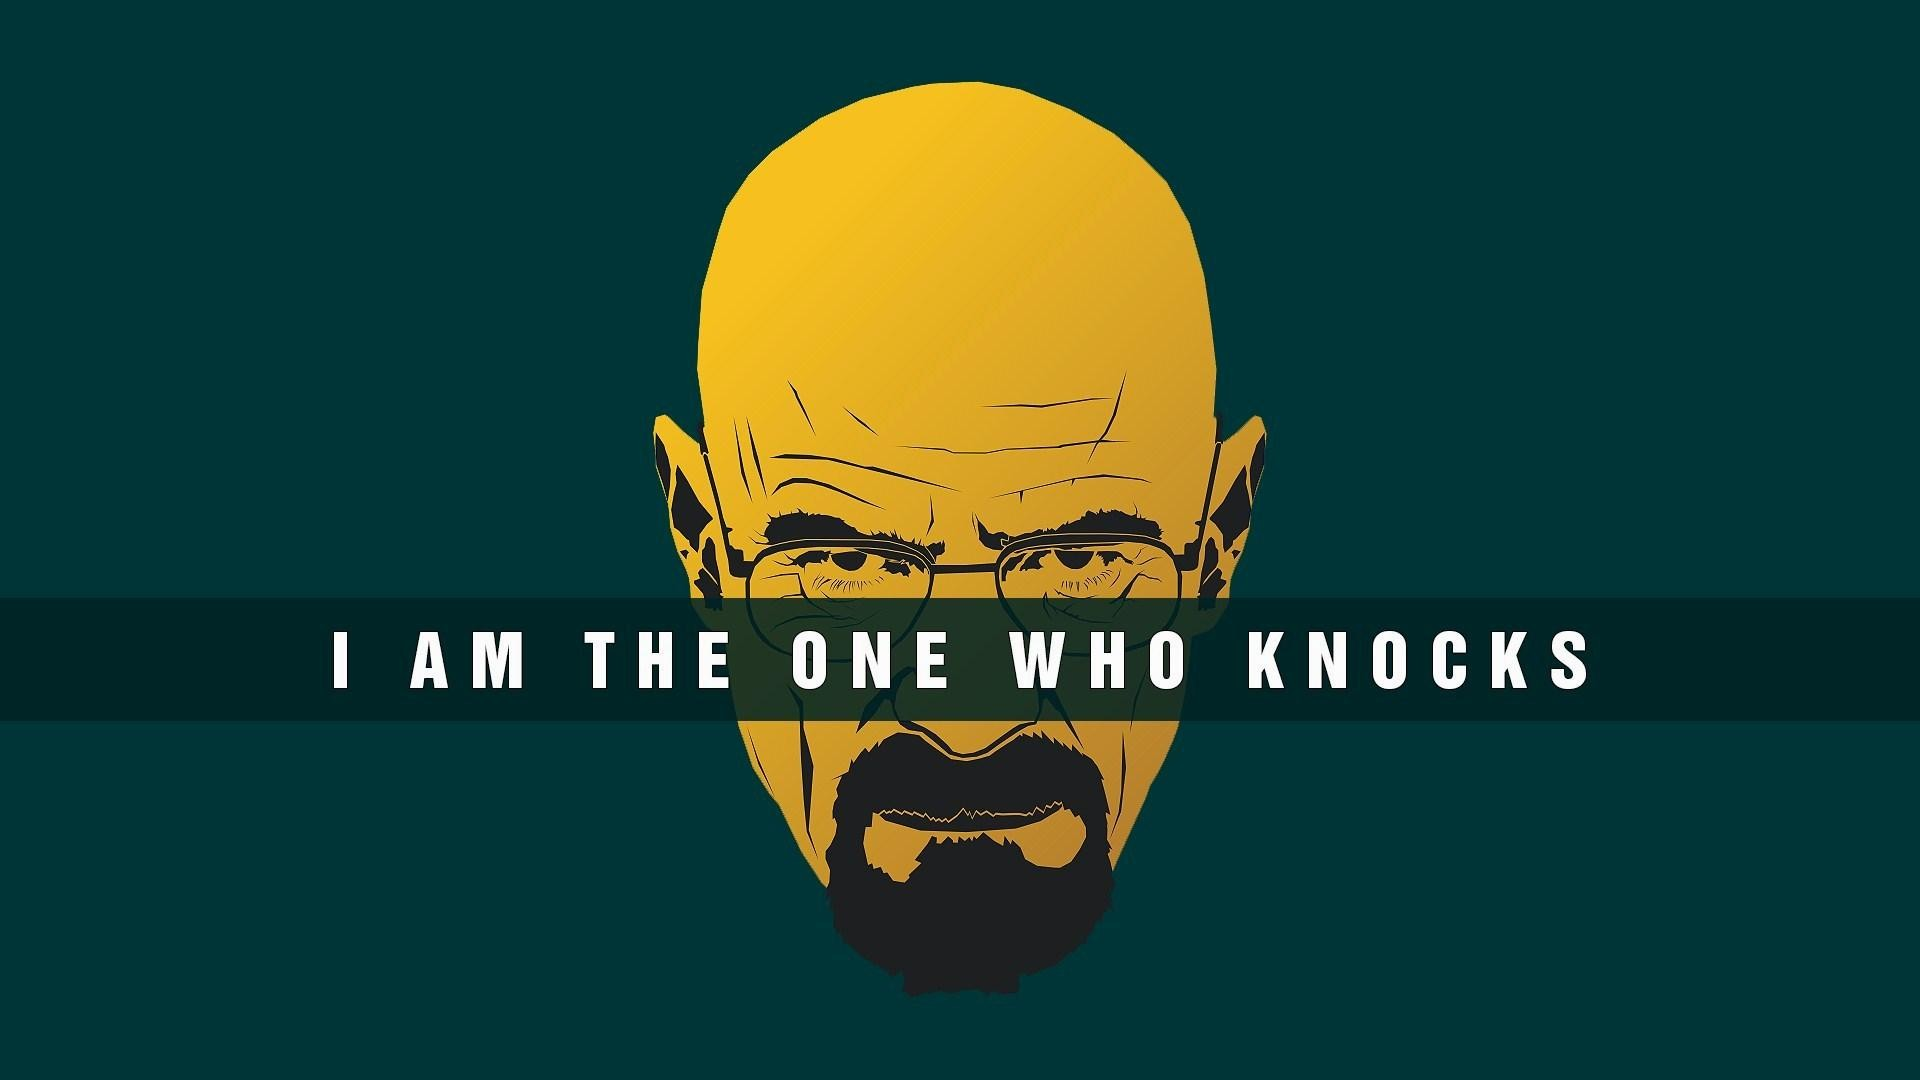 Breaking-Bad-HD-Wallpapers-I-am-the-One-